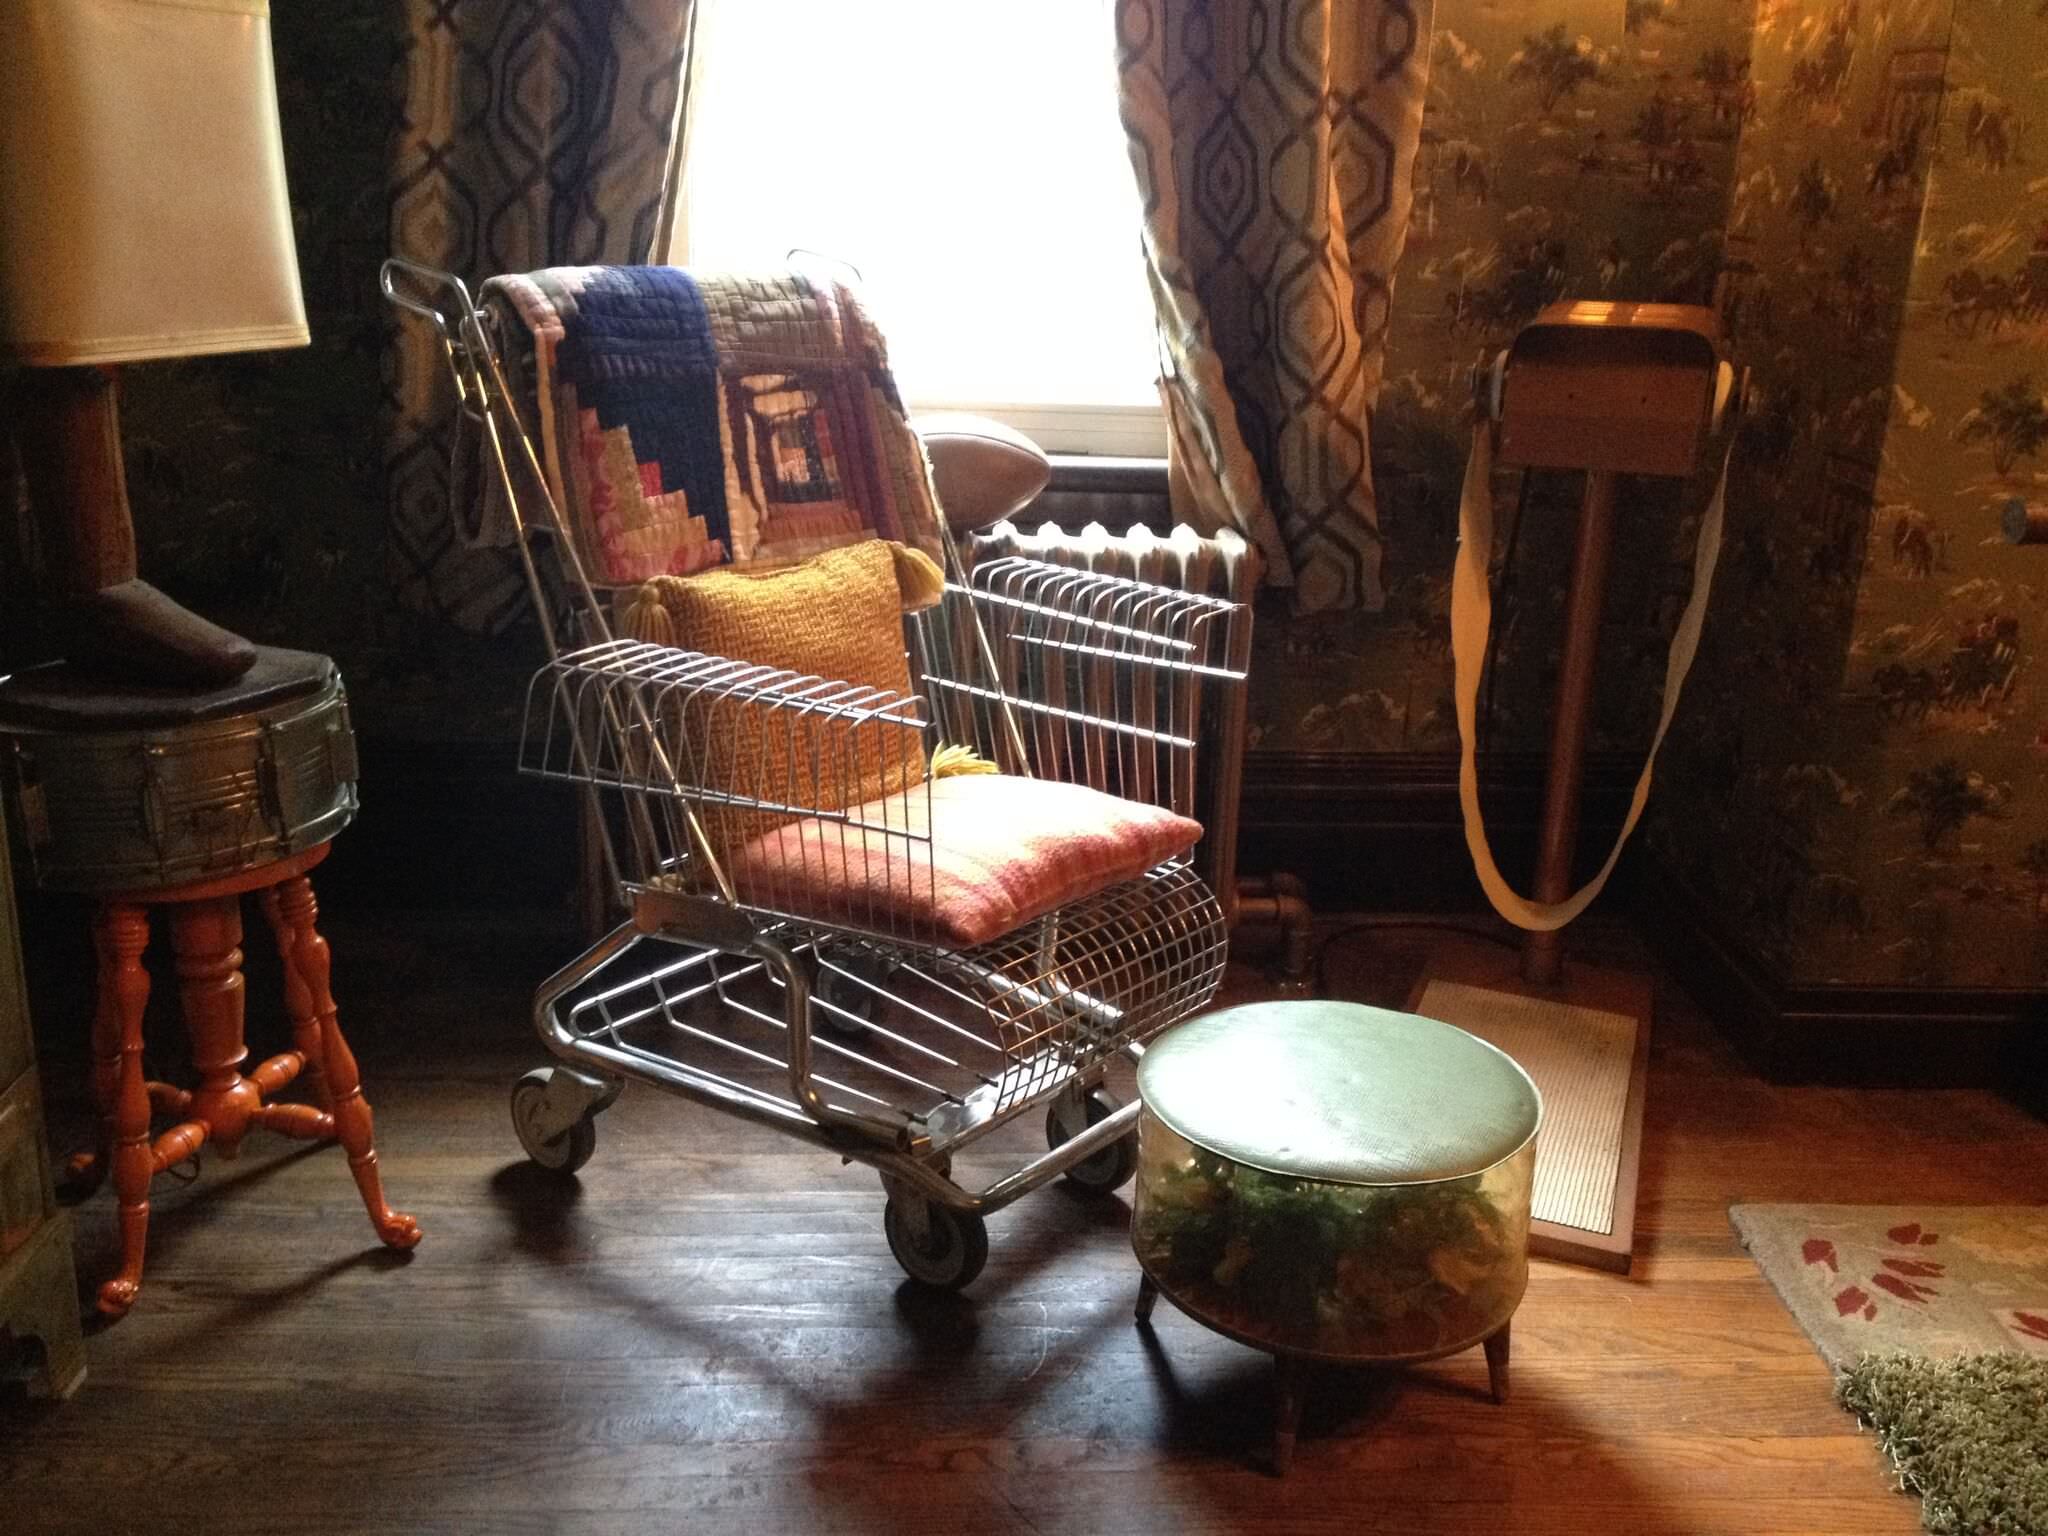 Zed's (Milo Manheim) easy chair, a repurposed shopping cart in his bedroom in Zombietown.